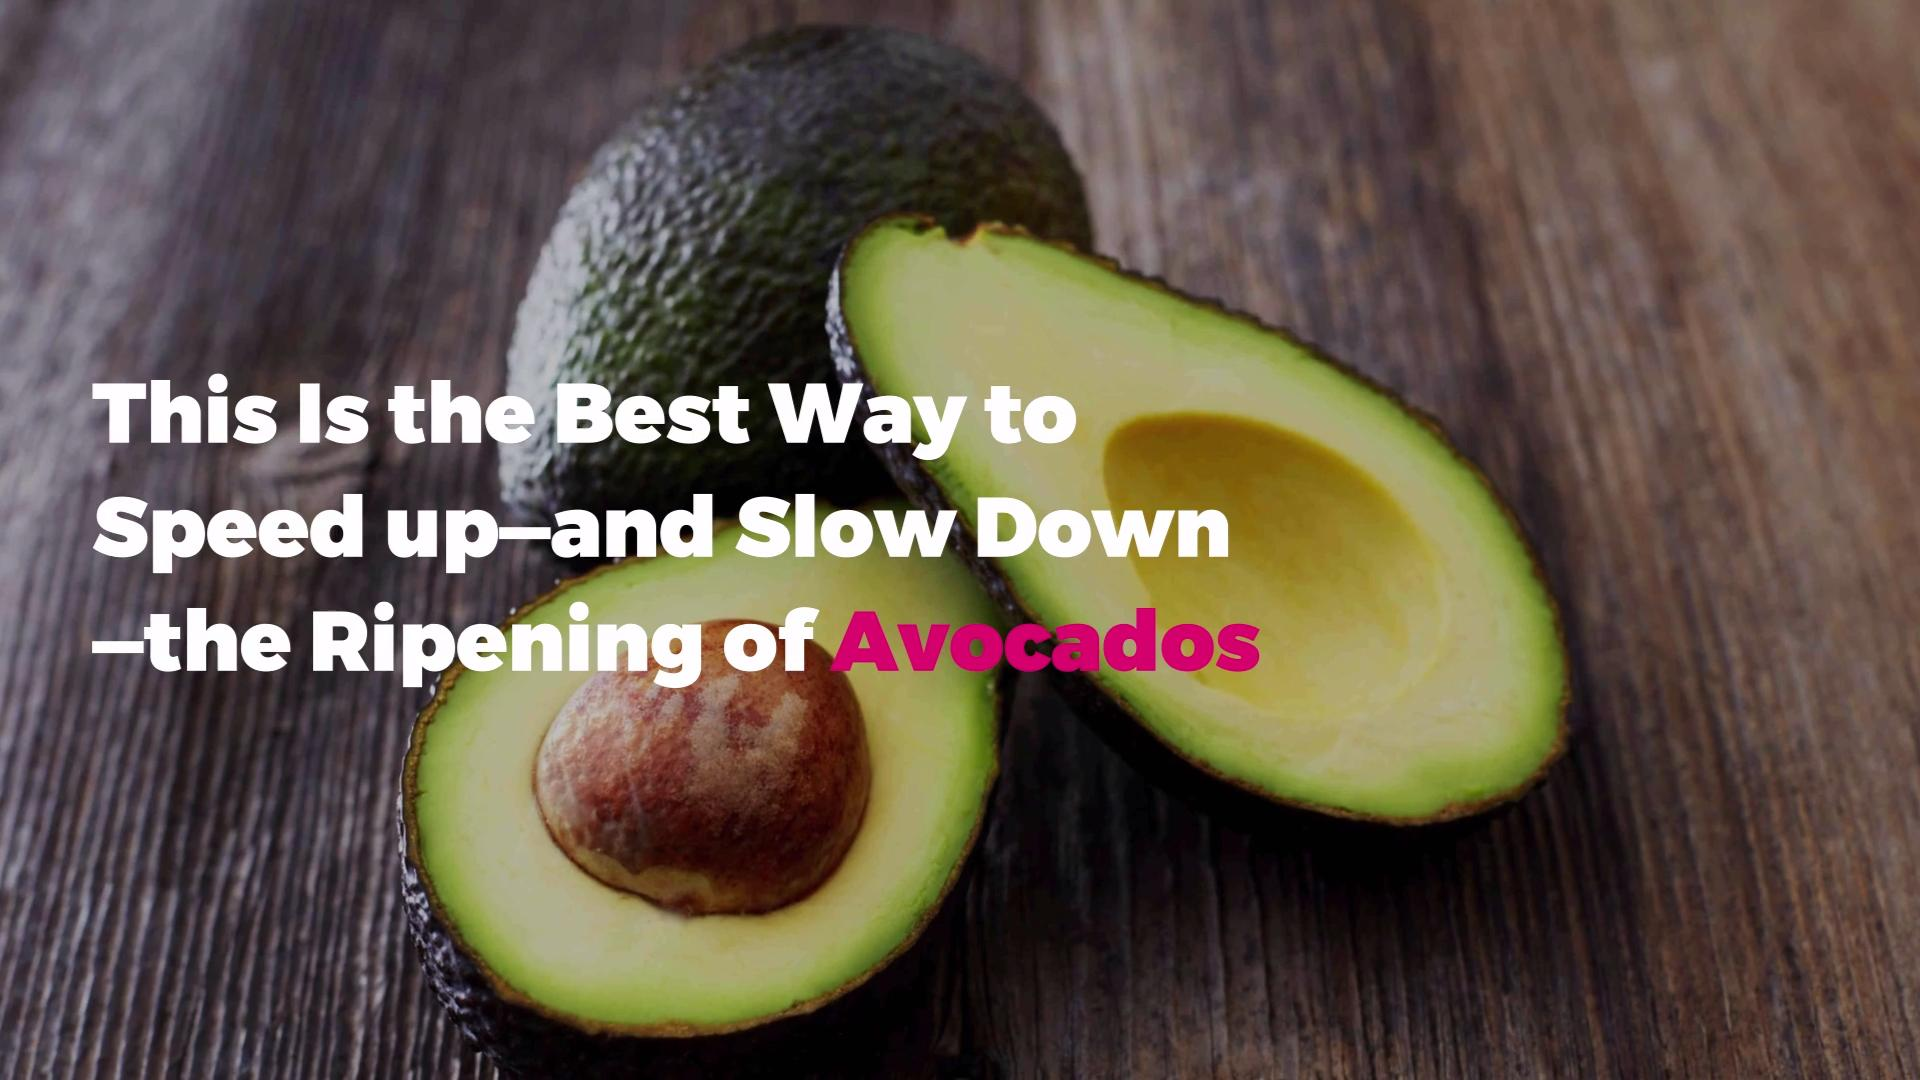 This Is the Best Way to Speed up—and Slow Down—the Ripening of